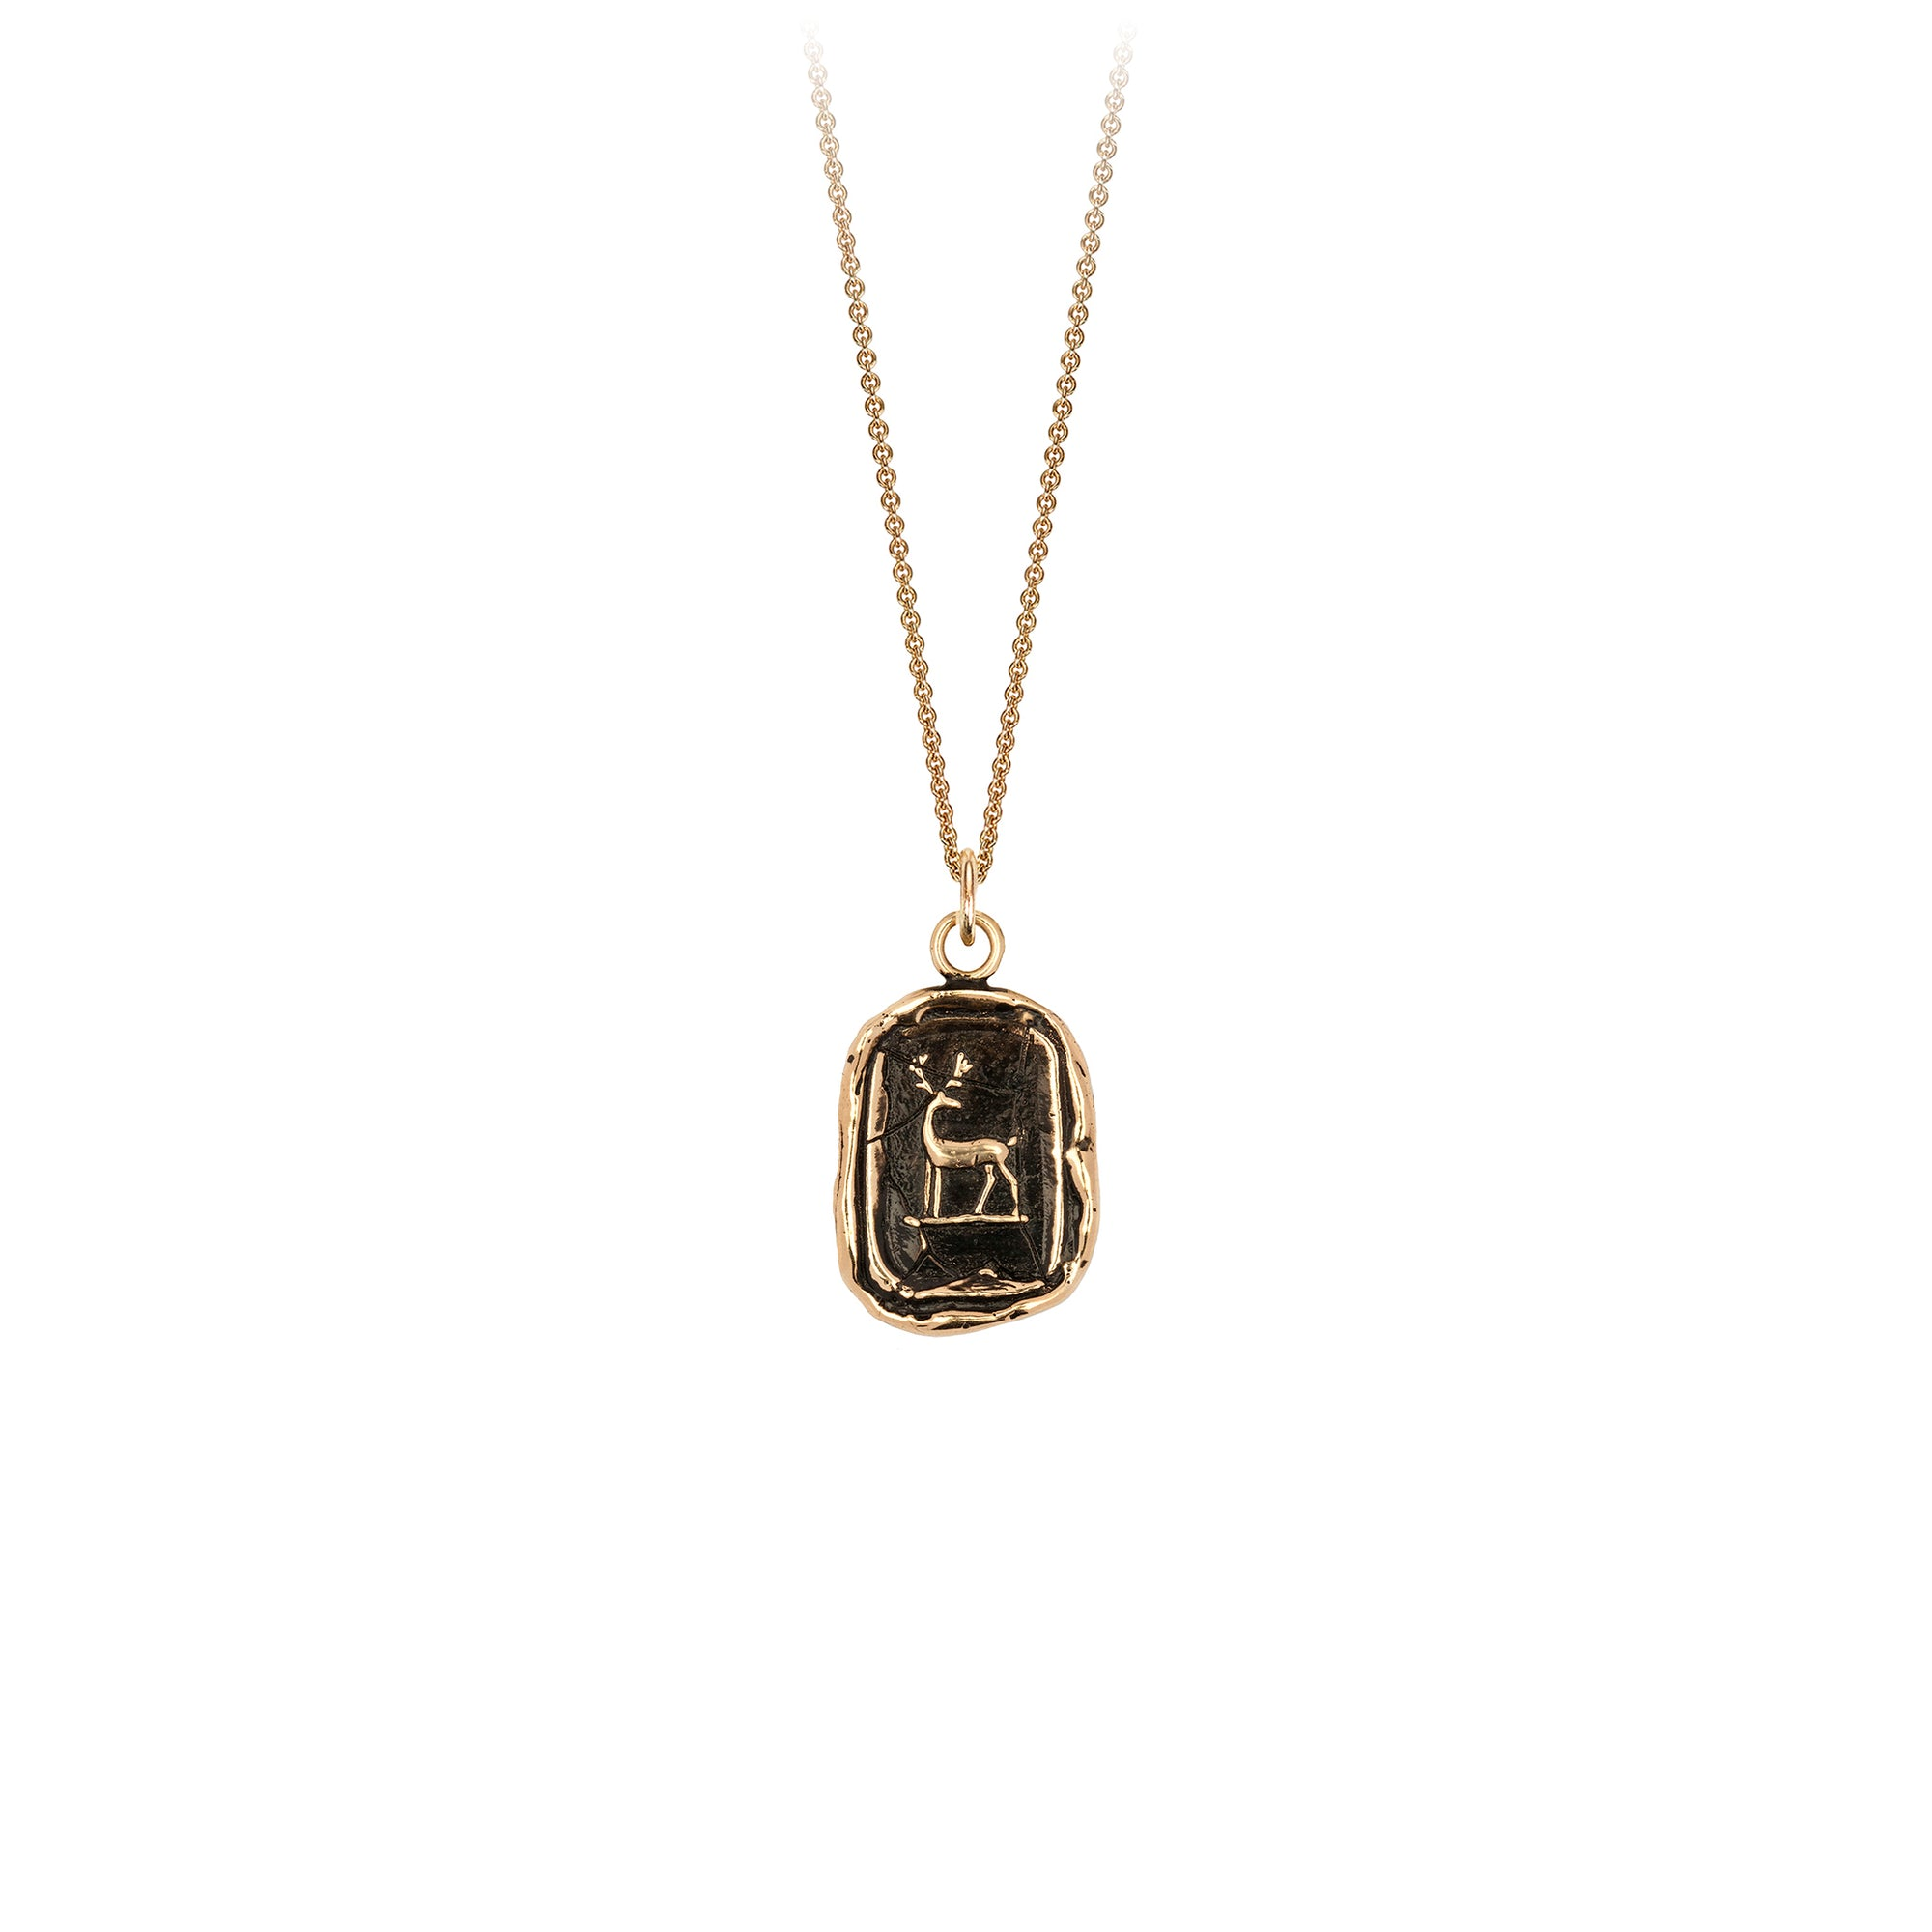 Pyrrha 14K Gold Whole Hearted Talisman Necklace